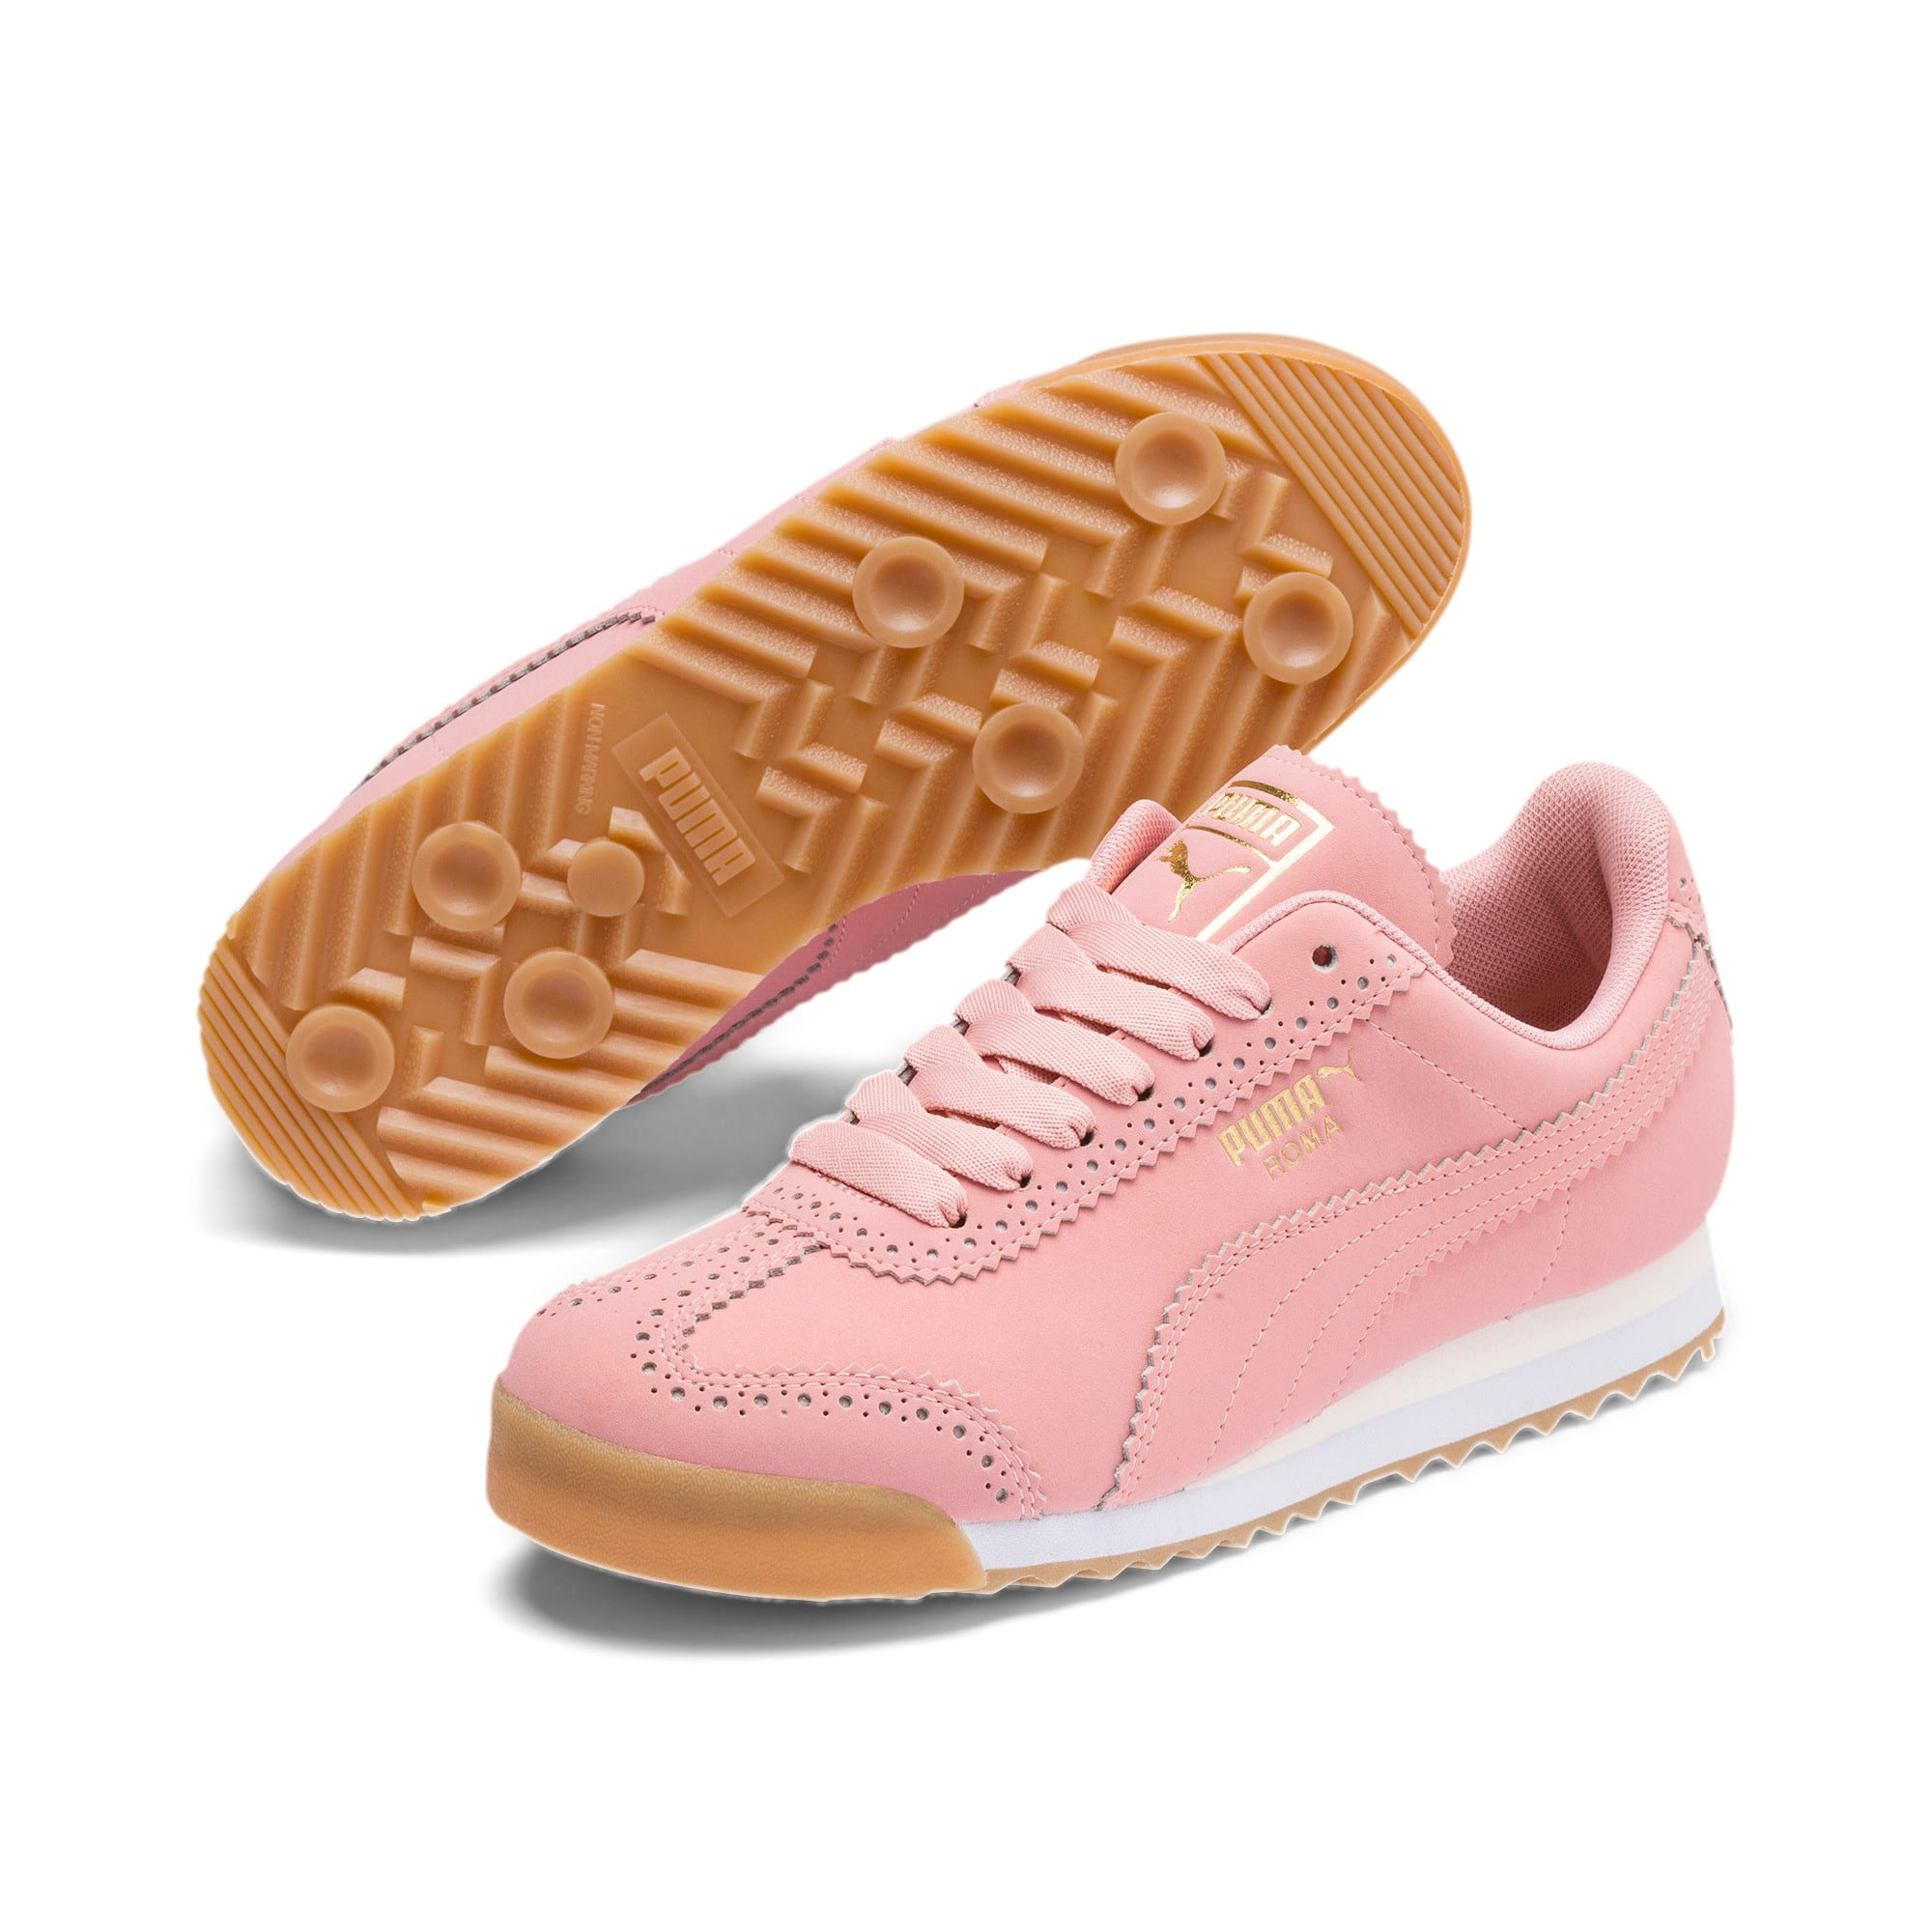 Roma Brogue Women's Sneakers, Bridal Rose-Puma Team Gold, large